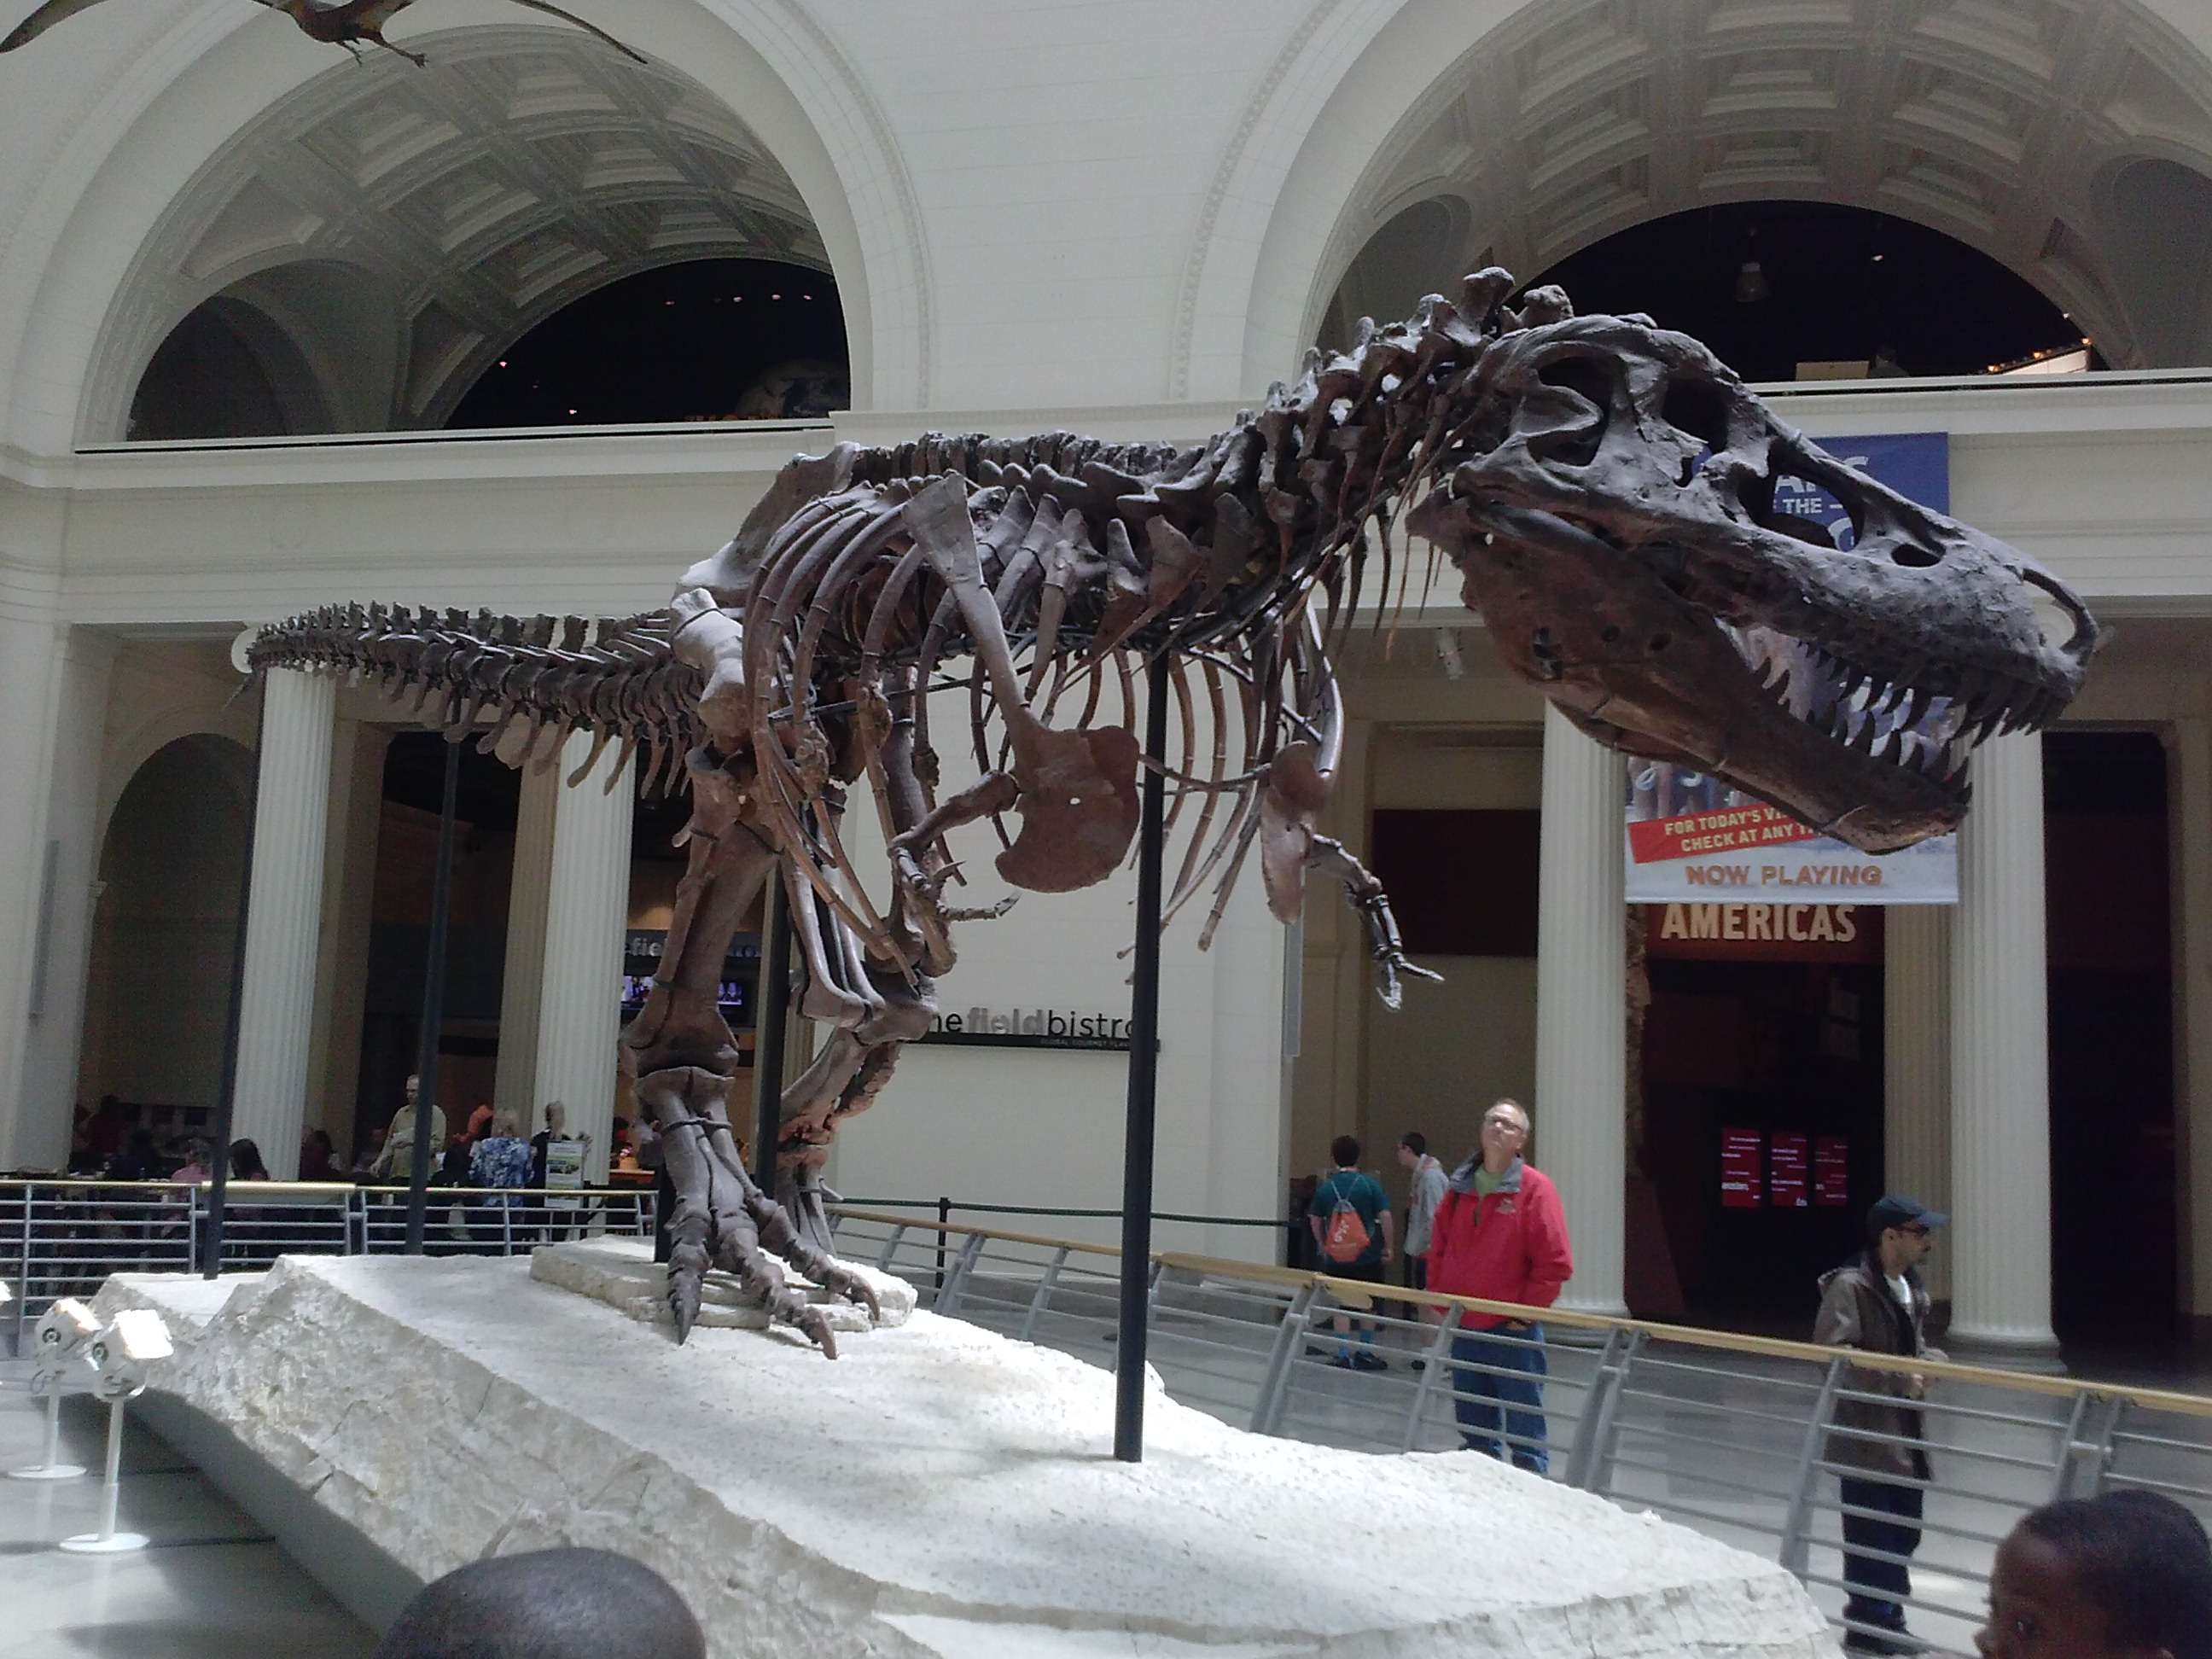 Sue the largest most complete T-rex discovered so far